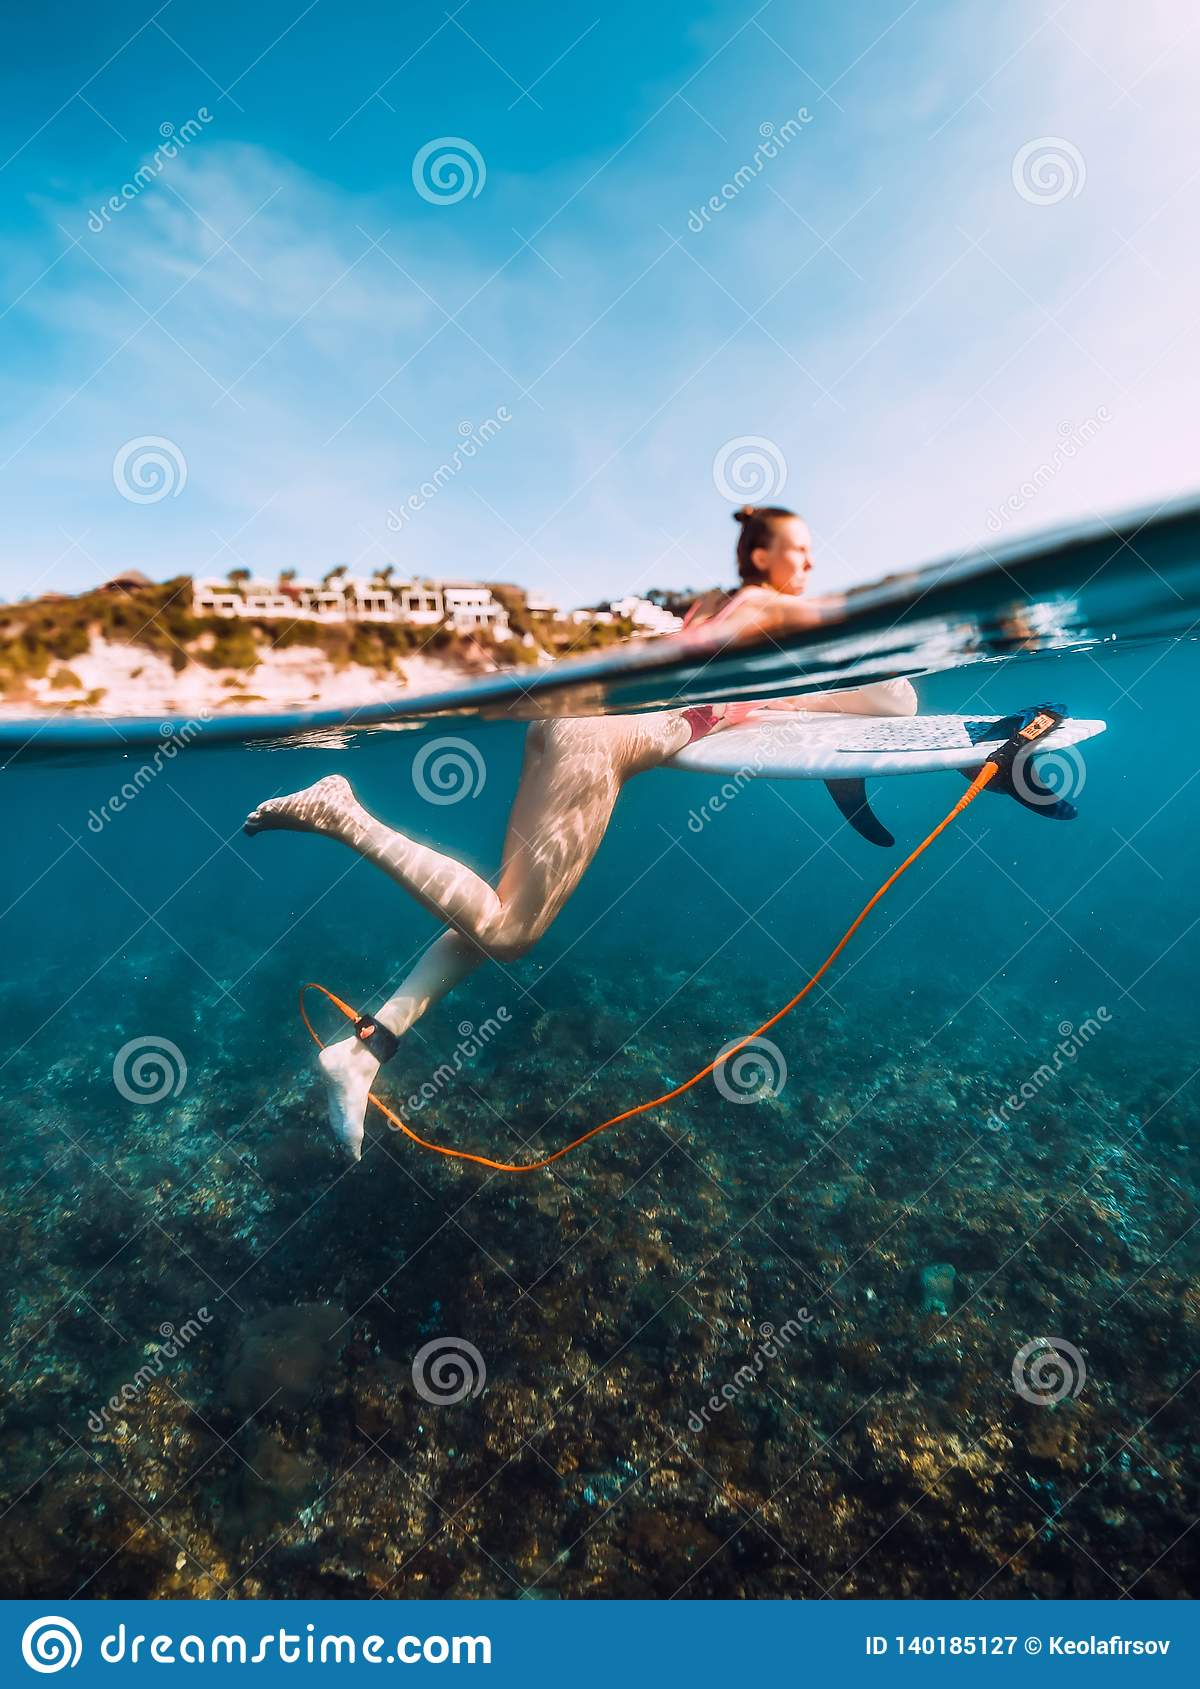 Young surf girl at surfboard underwater in sea